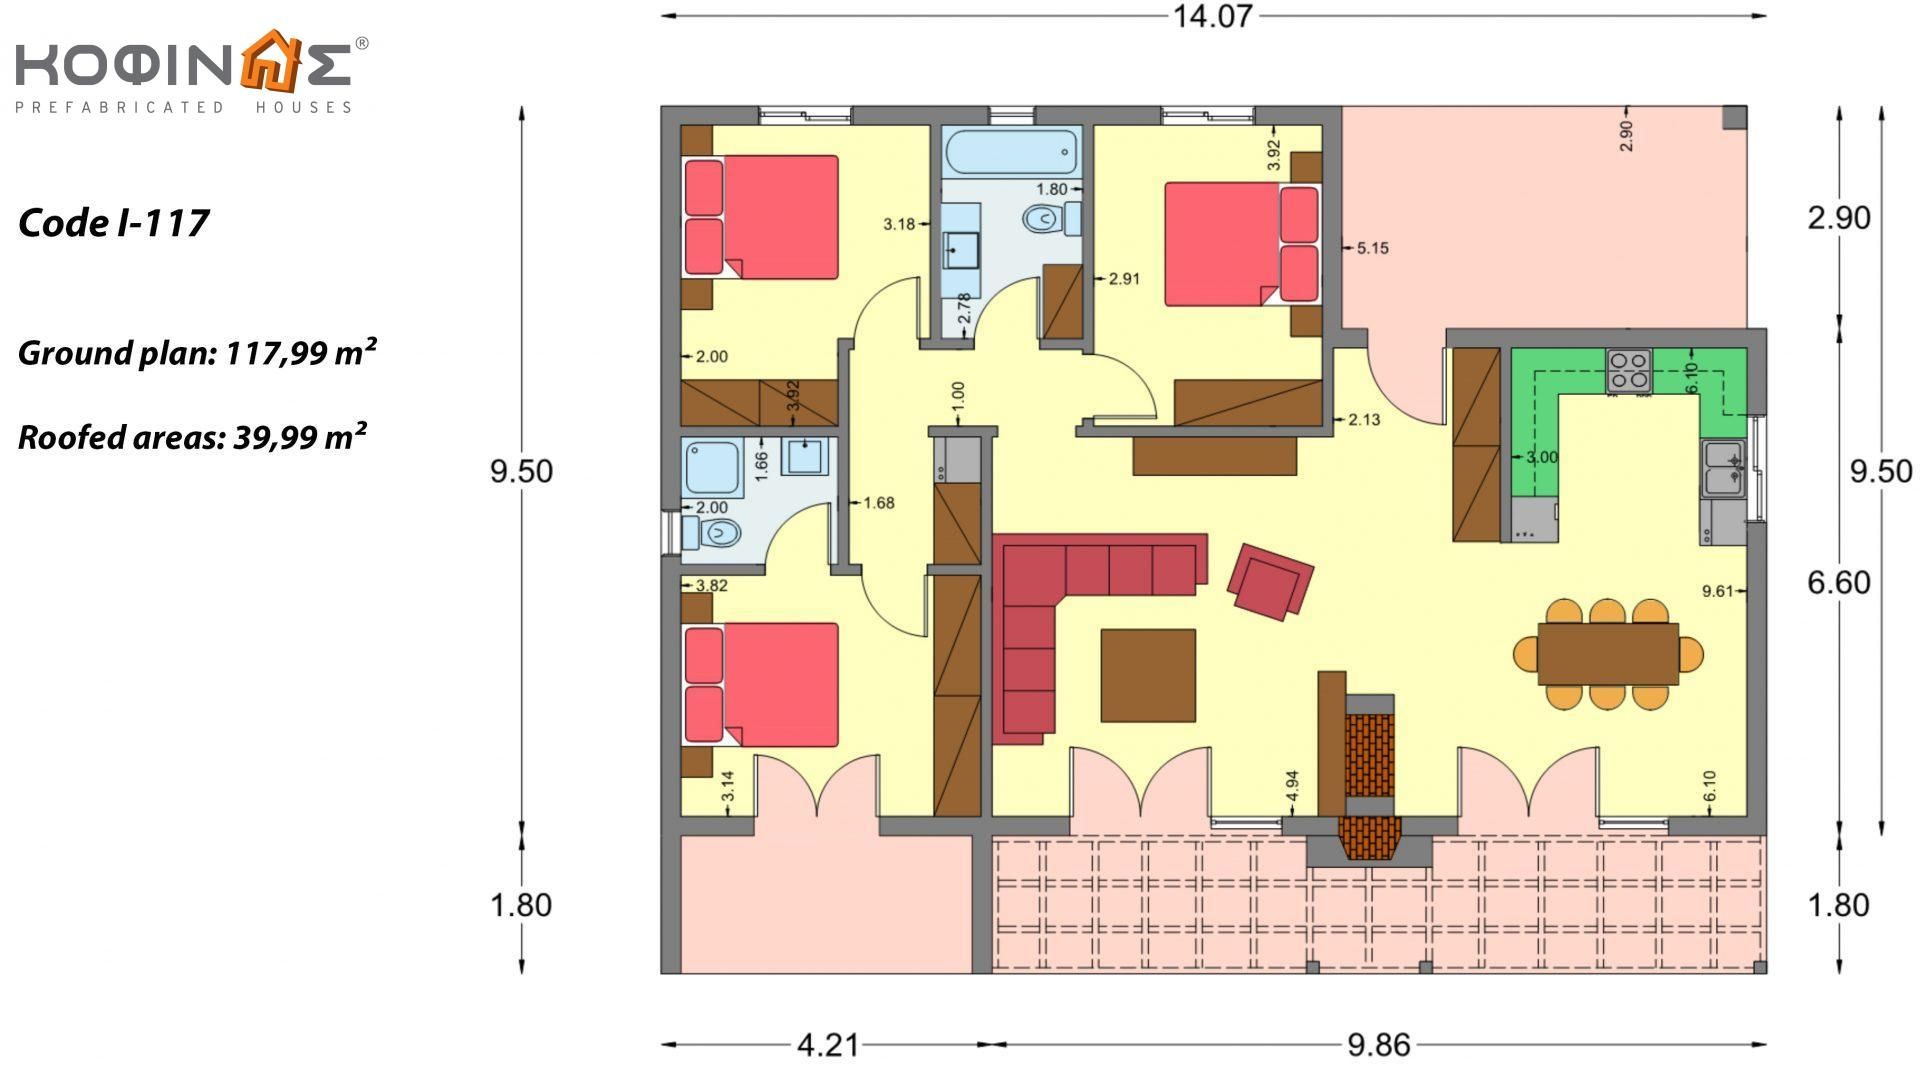 1-story house I-117, total surface of 117,99 m², roofed areas 39,99 m²